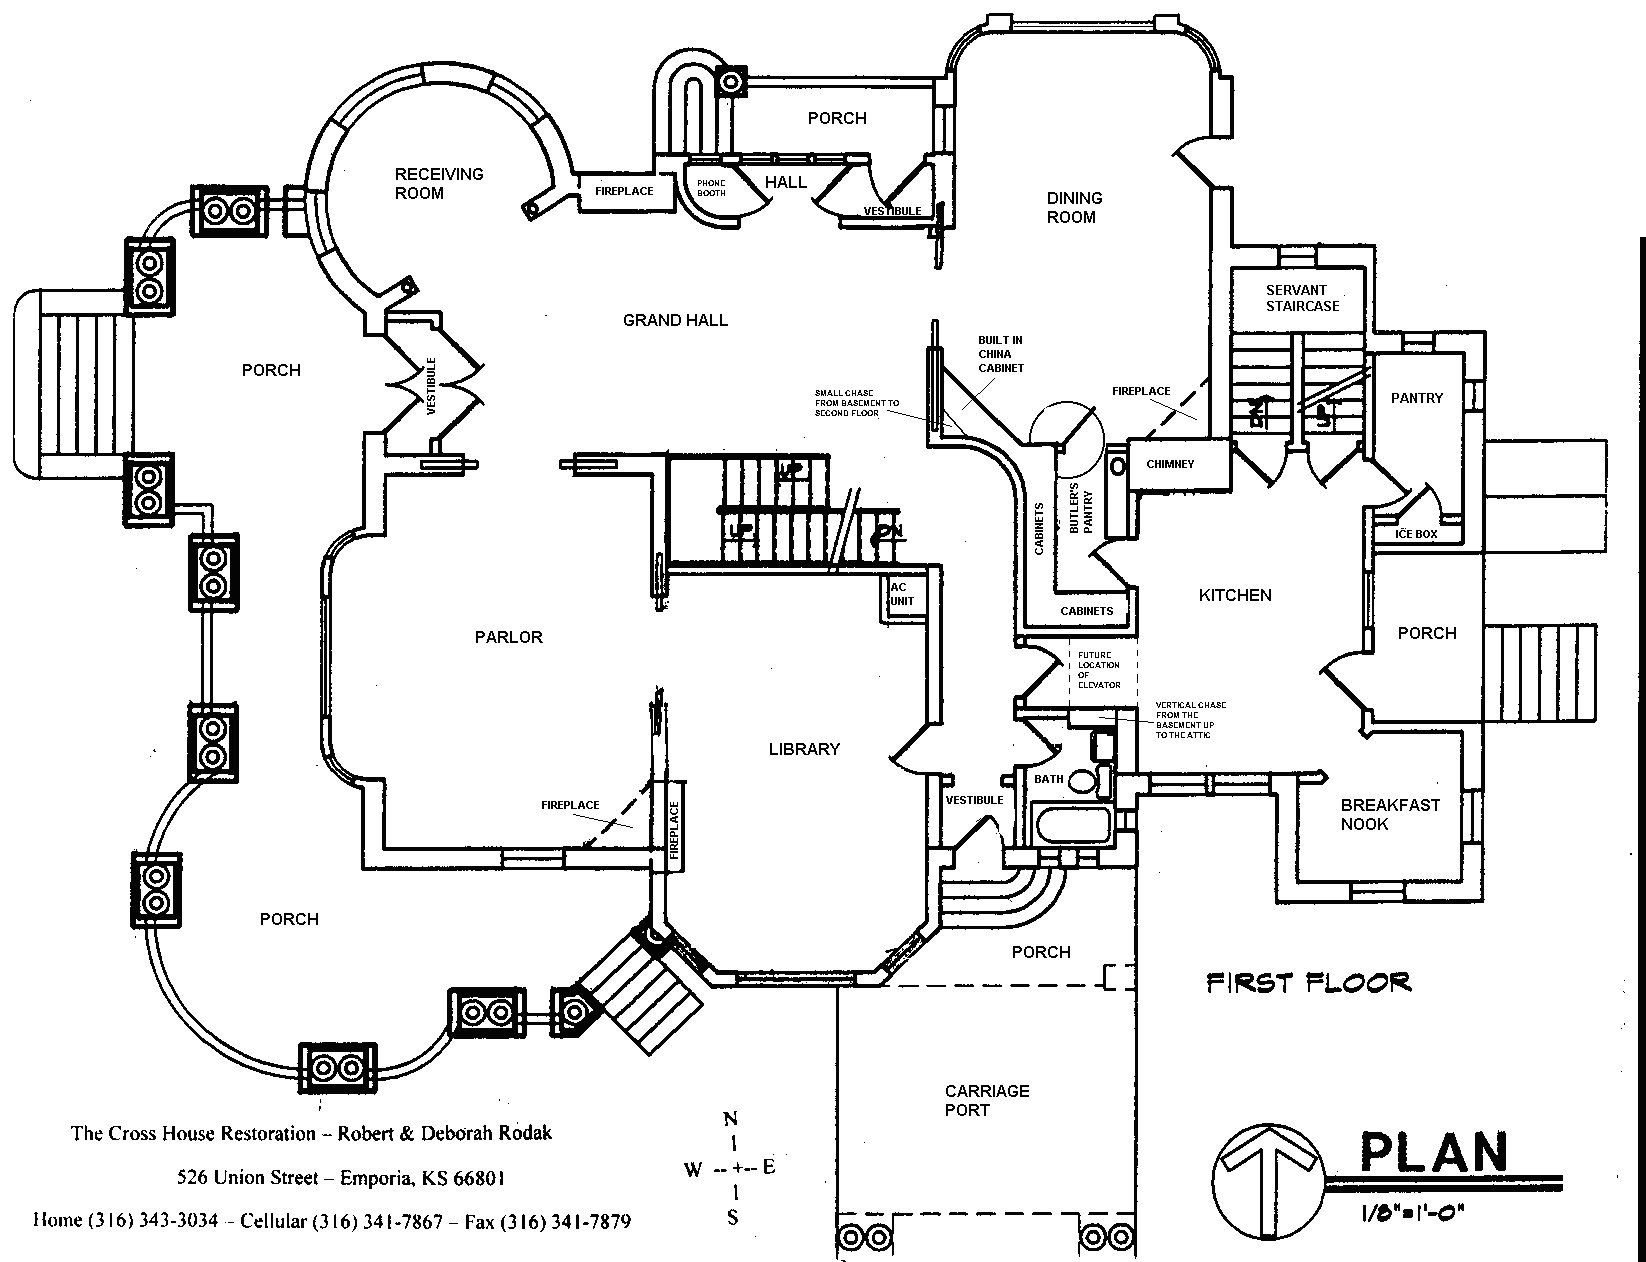 Cross house restoration floor plans and blueprints for Build my house plans